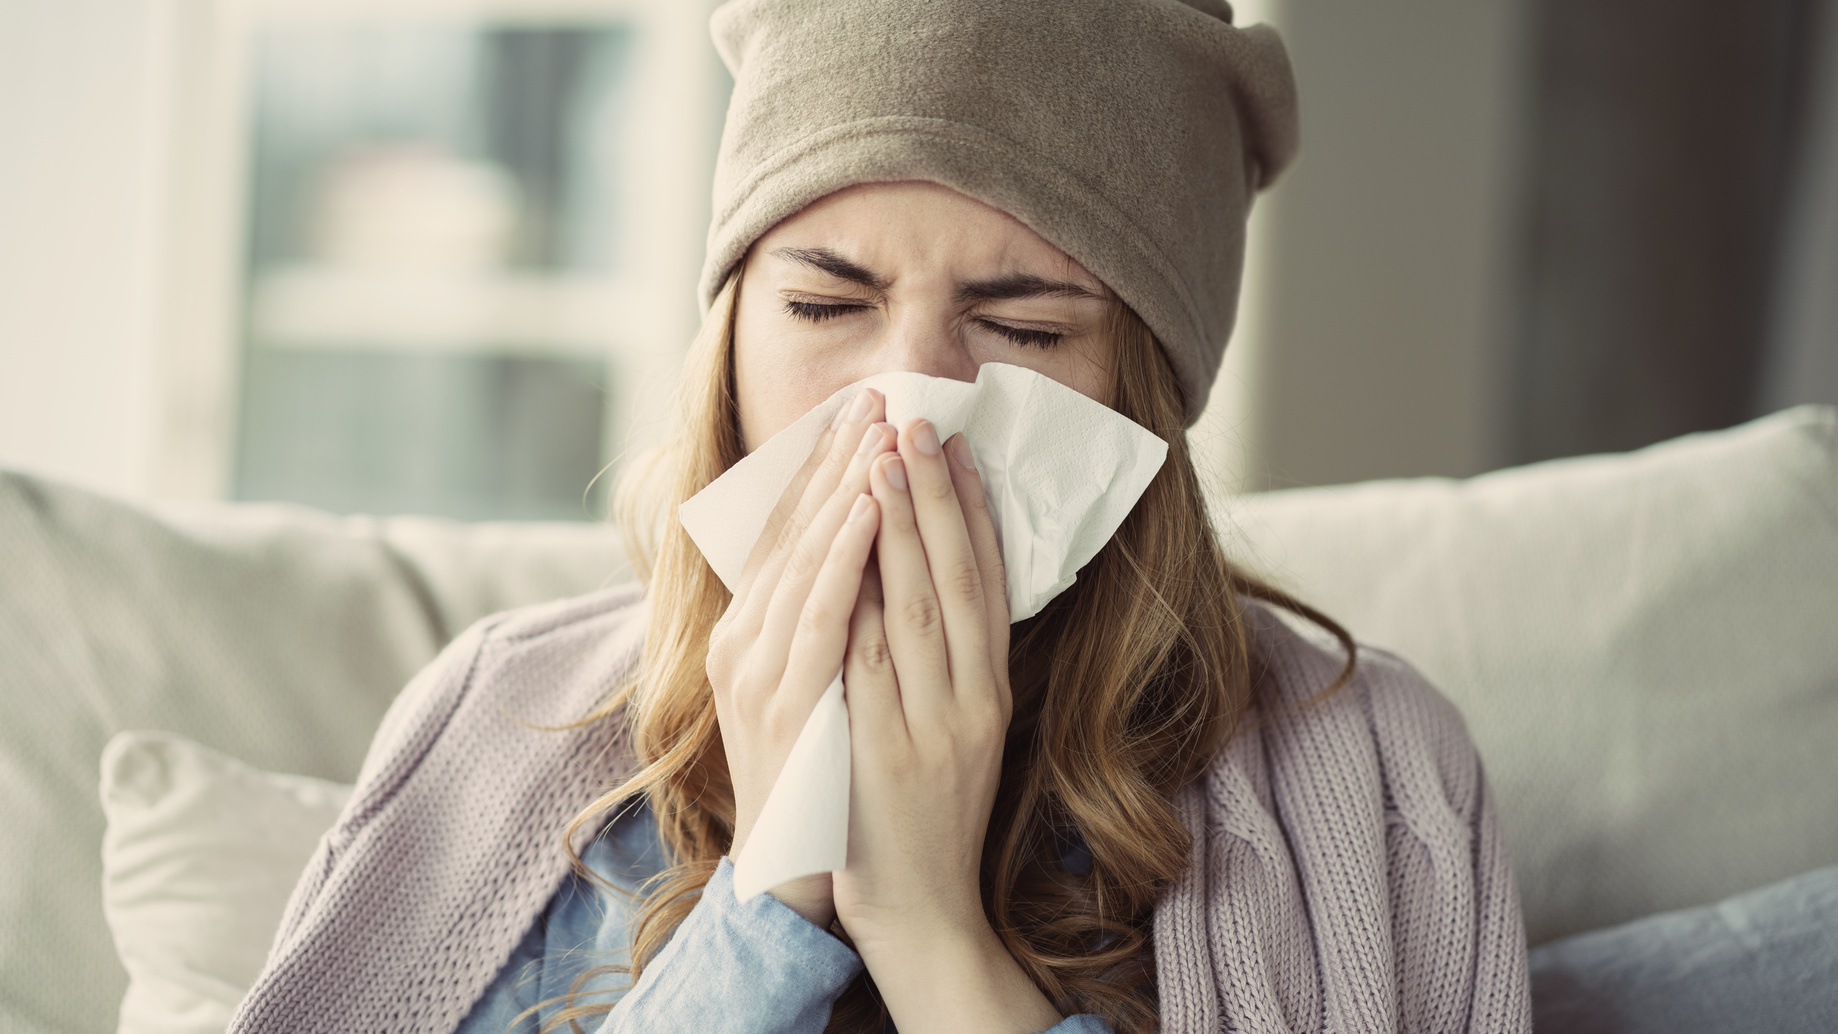 What to do when you catch a cold